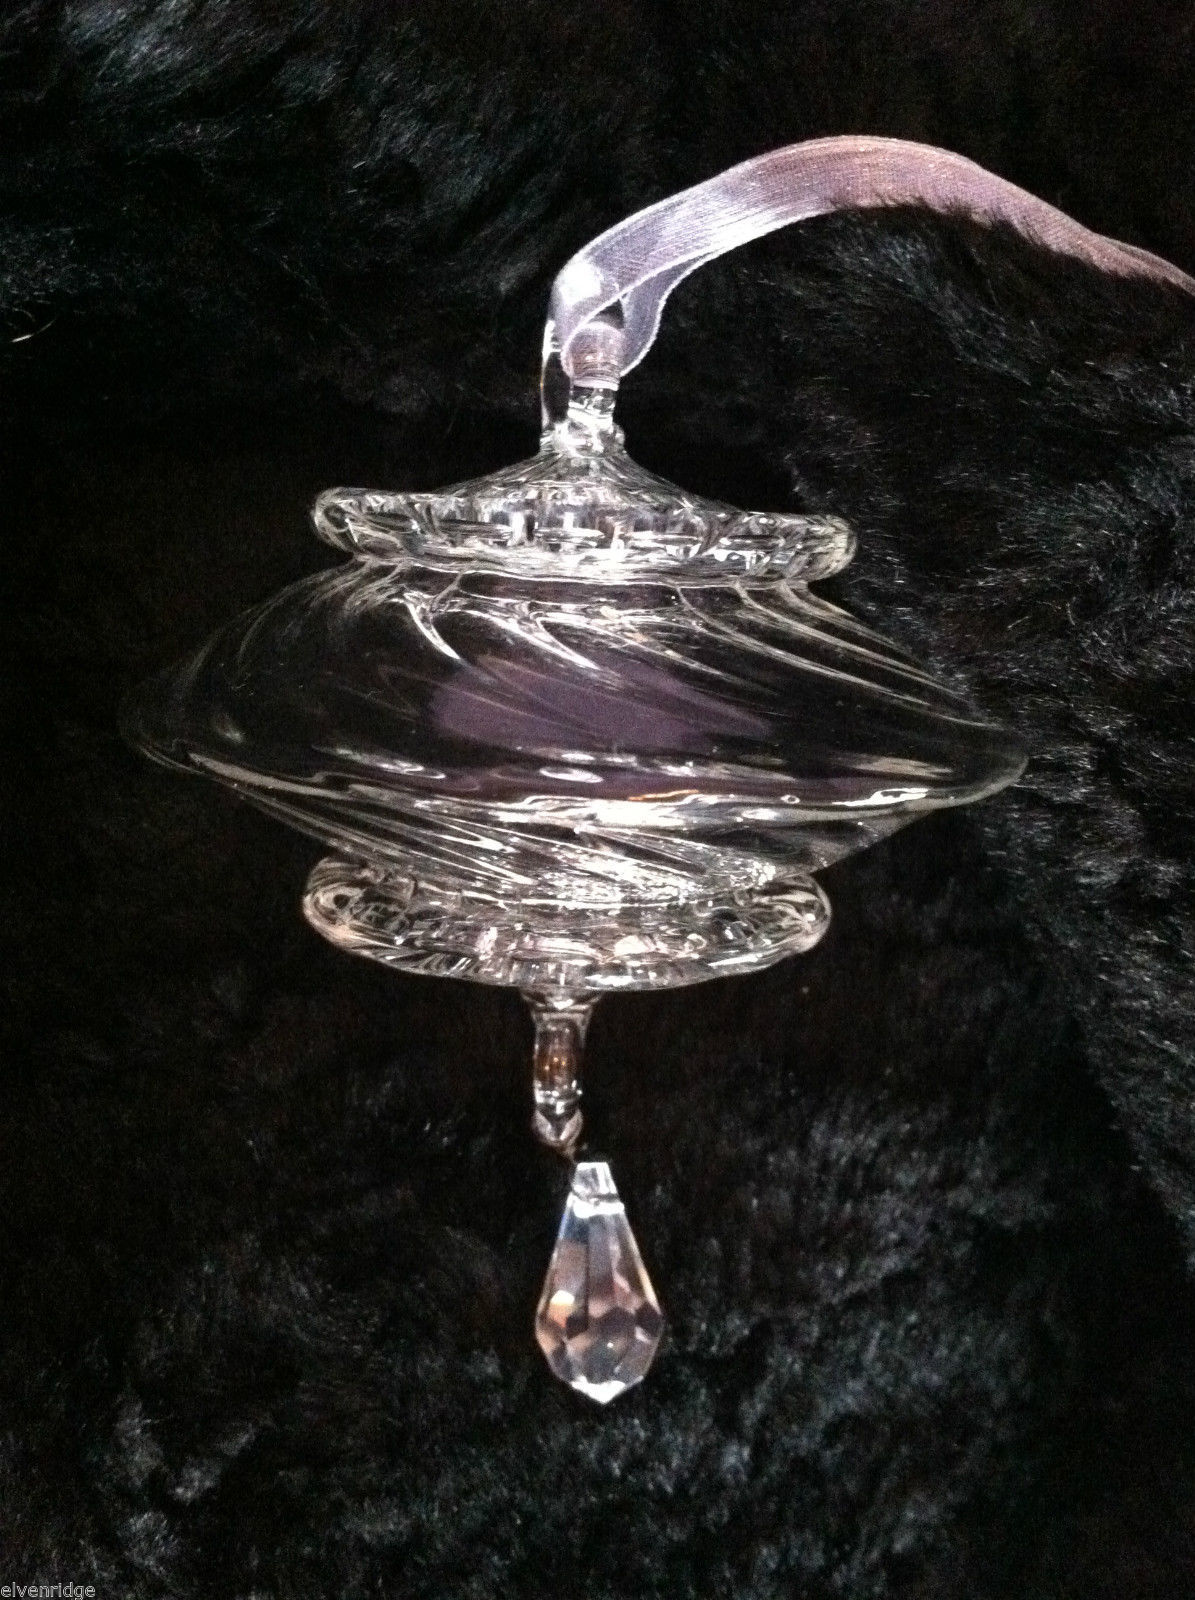 Twisted crystal ornament w/ teardrop crystal hanging